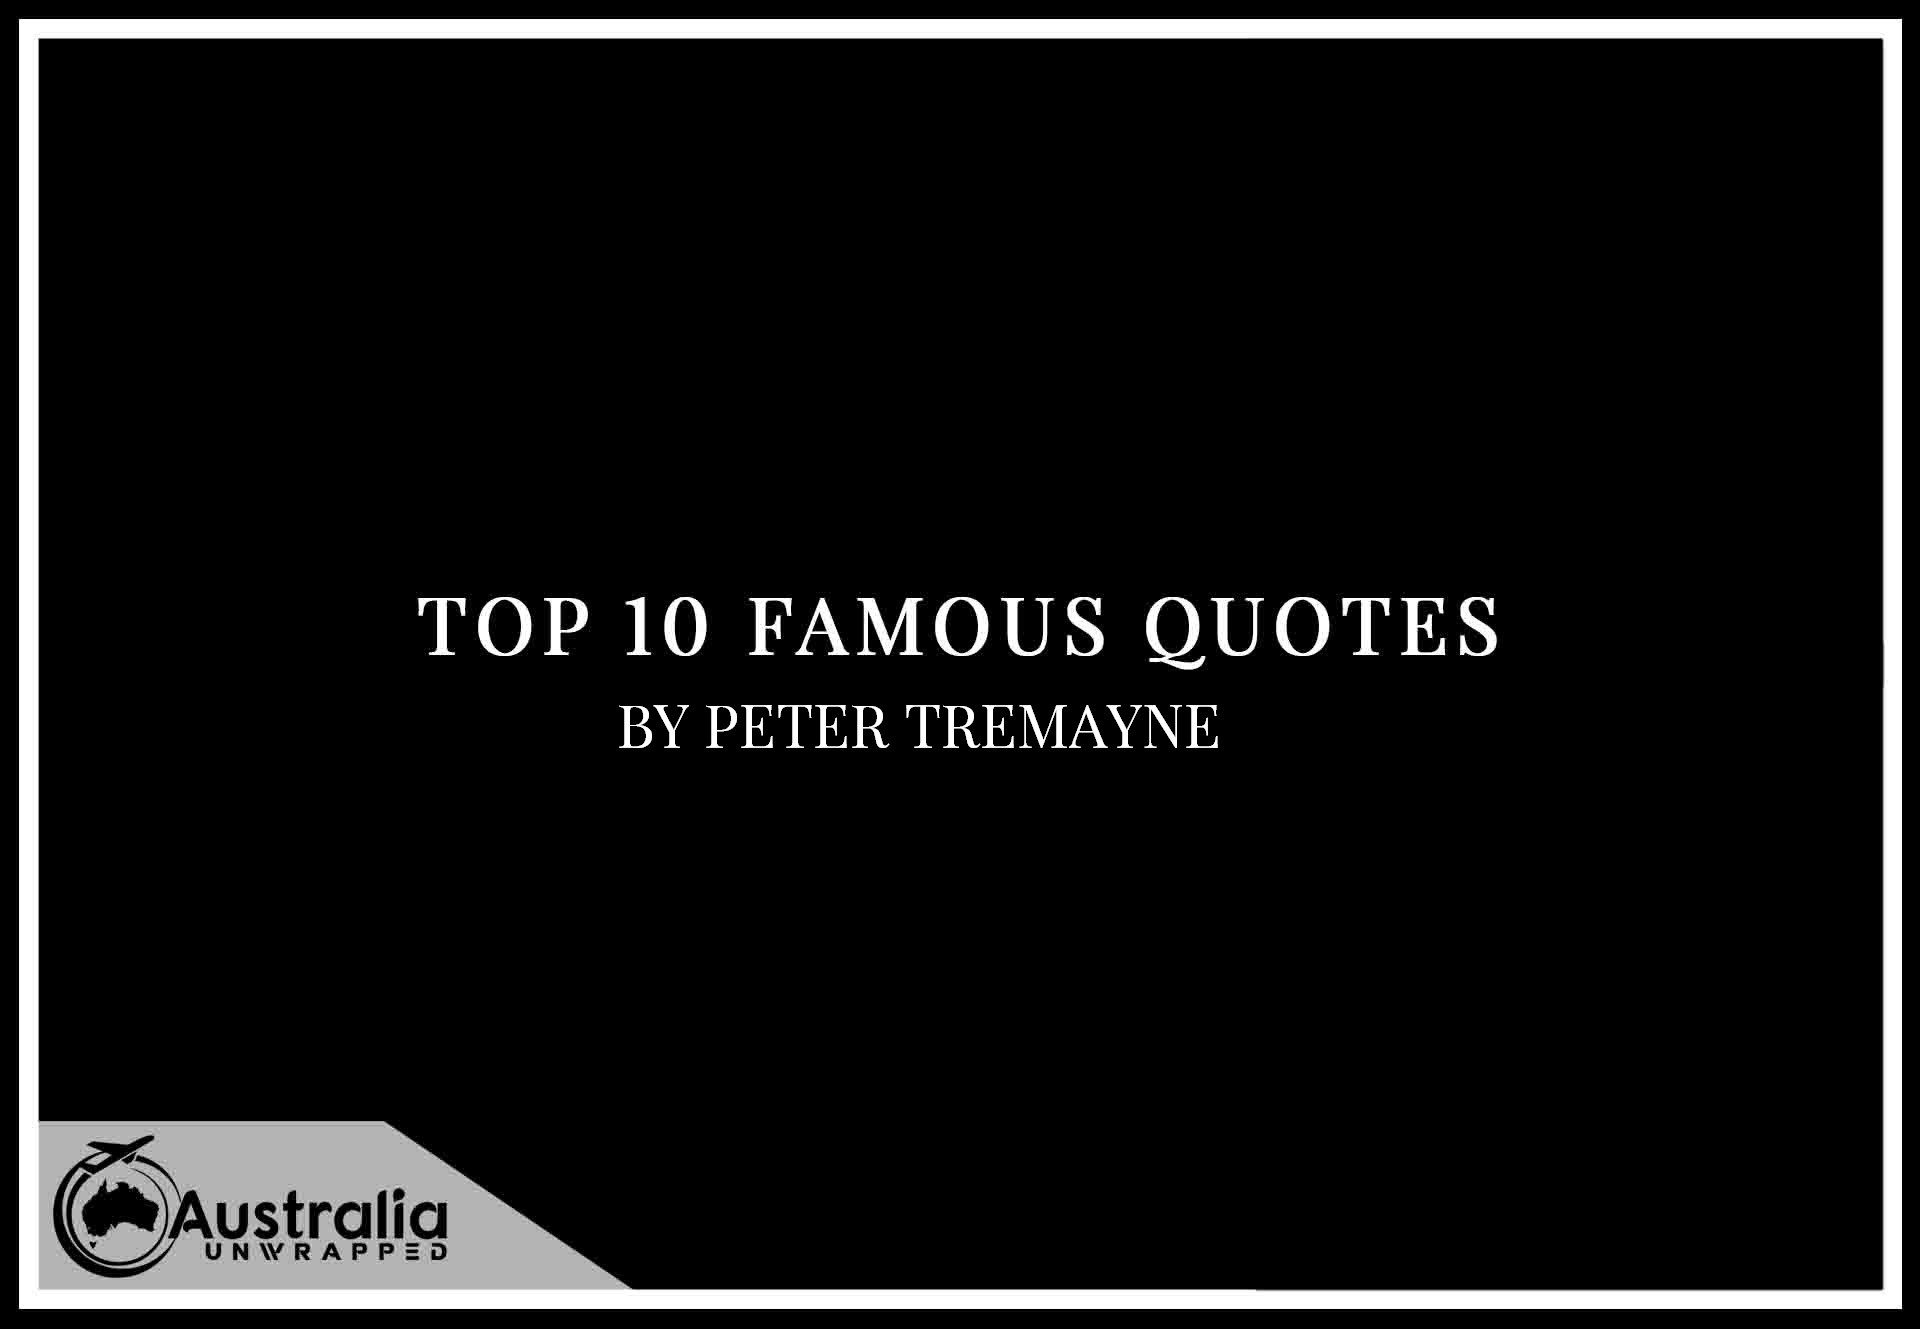 Top 10 Famous Quotes by Author Peter Tremayne